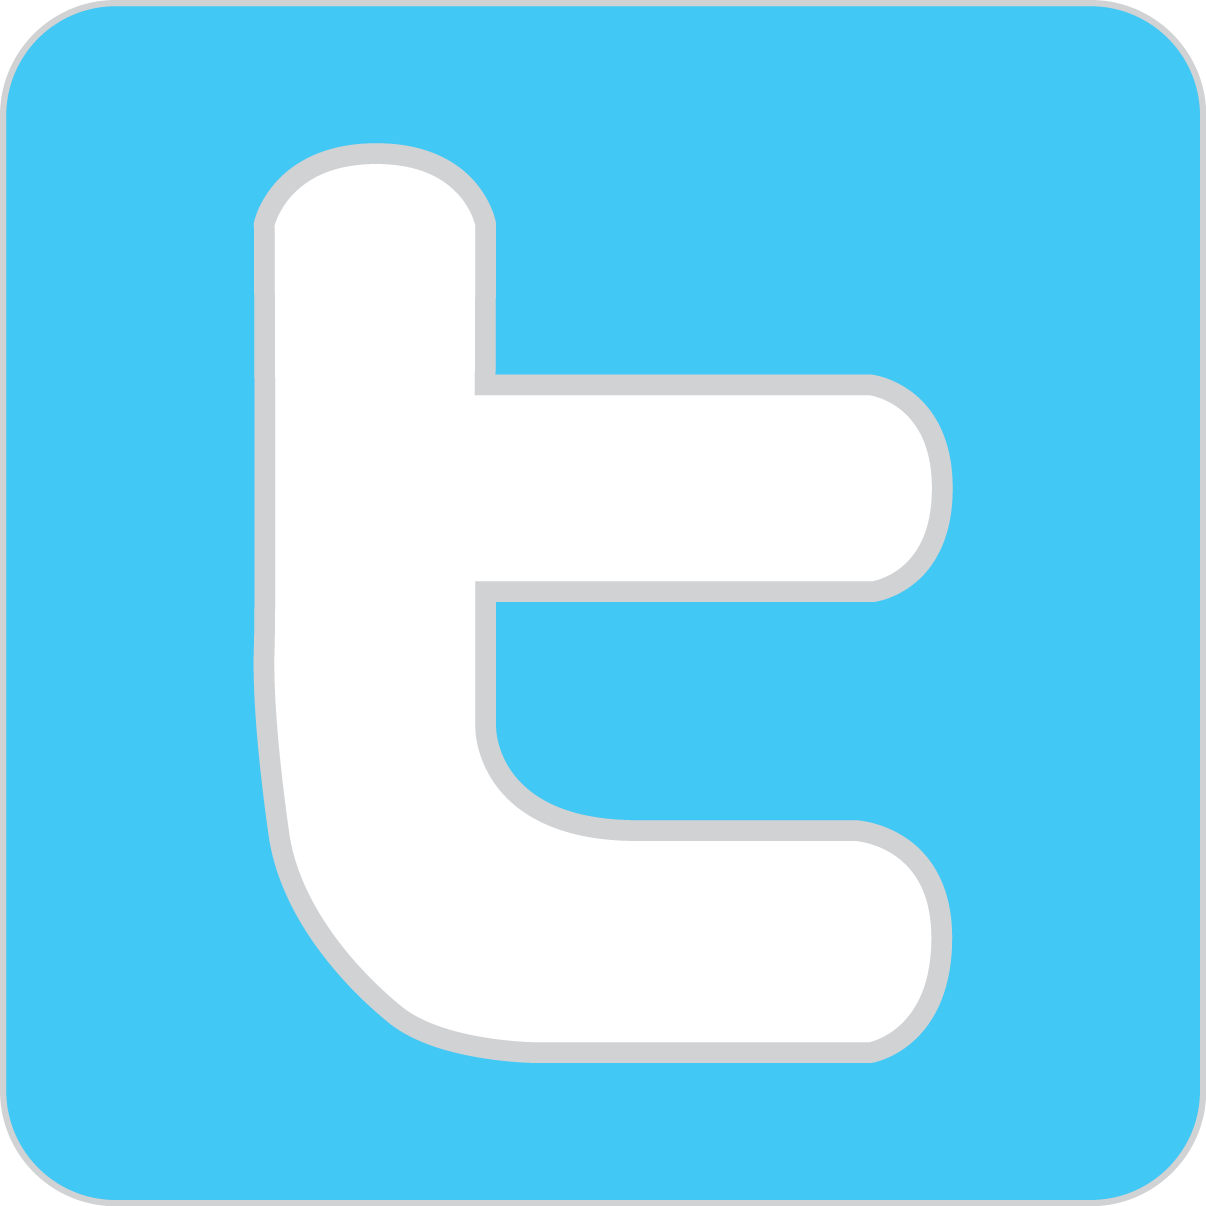 Image result for twitter icon square